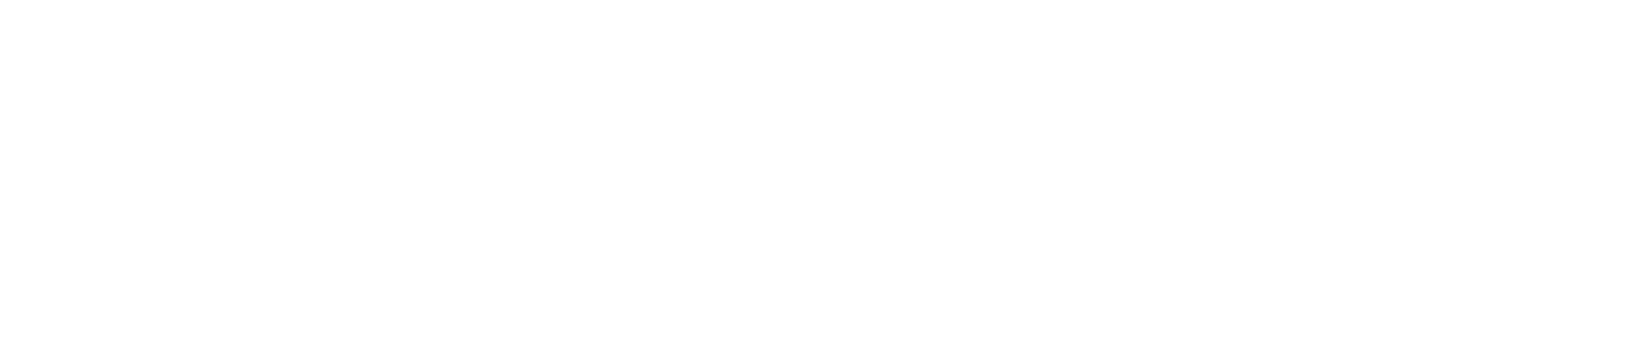 v1_Website_Alienware-Logo_01.png